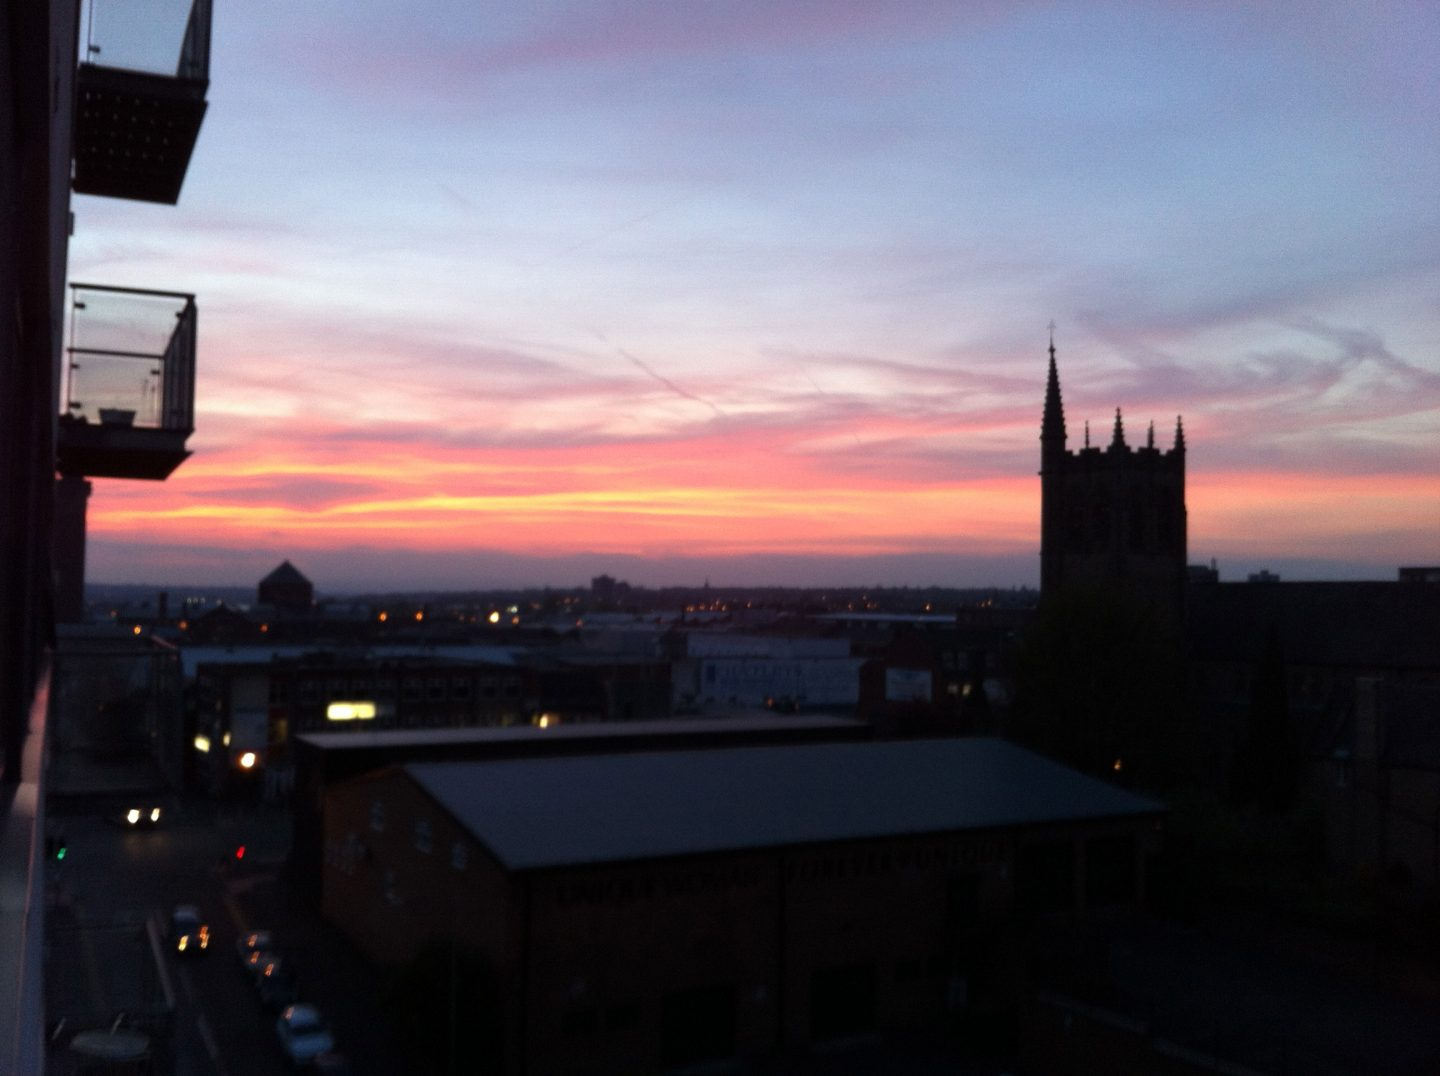 Sunset over Manchester from my balcony